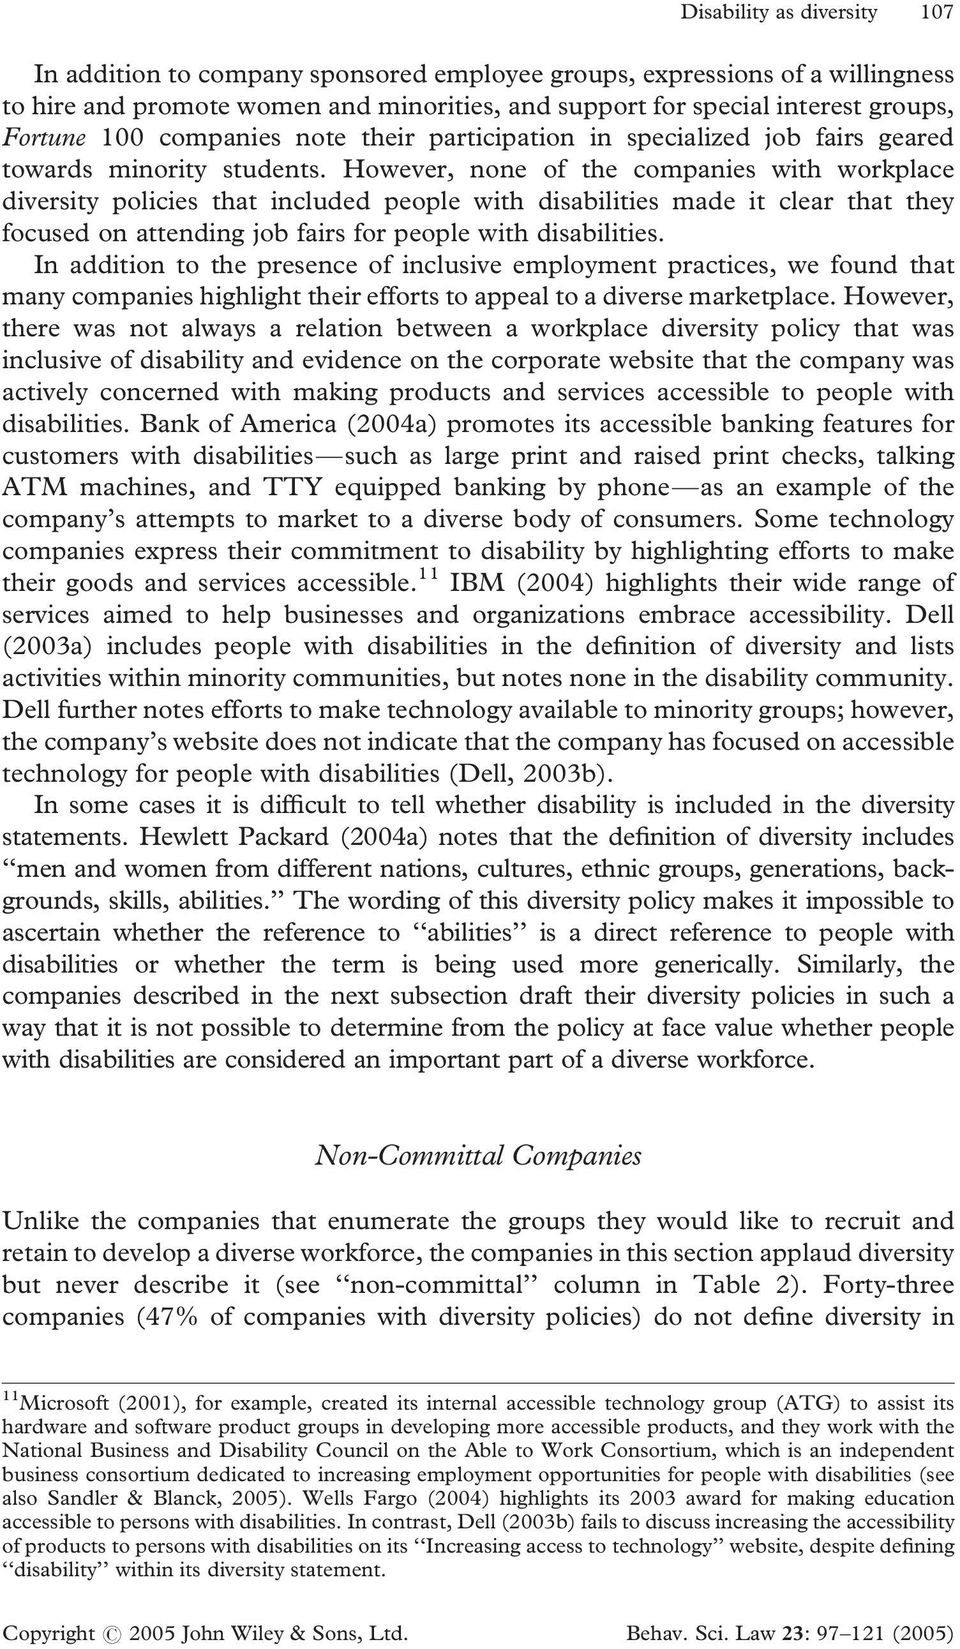 However, none of the companies with workplace diversity policies that included people with disabilities made it clear that they focused on attending job fairs for people with disabilities.